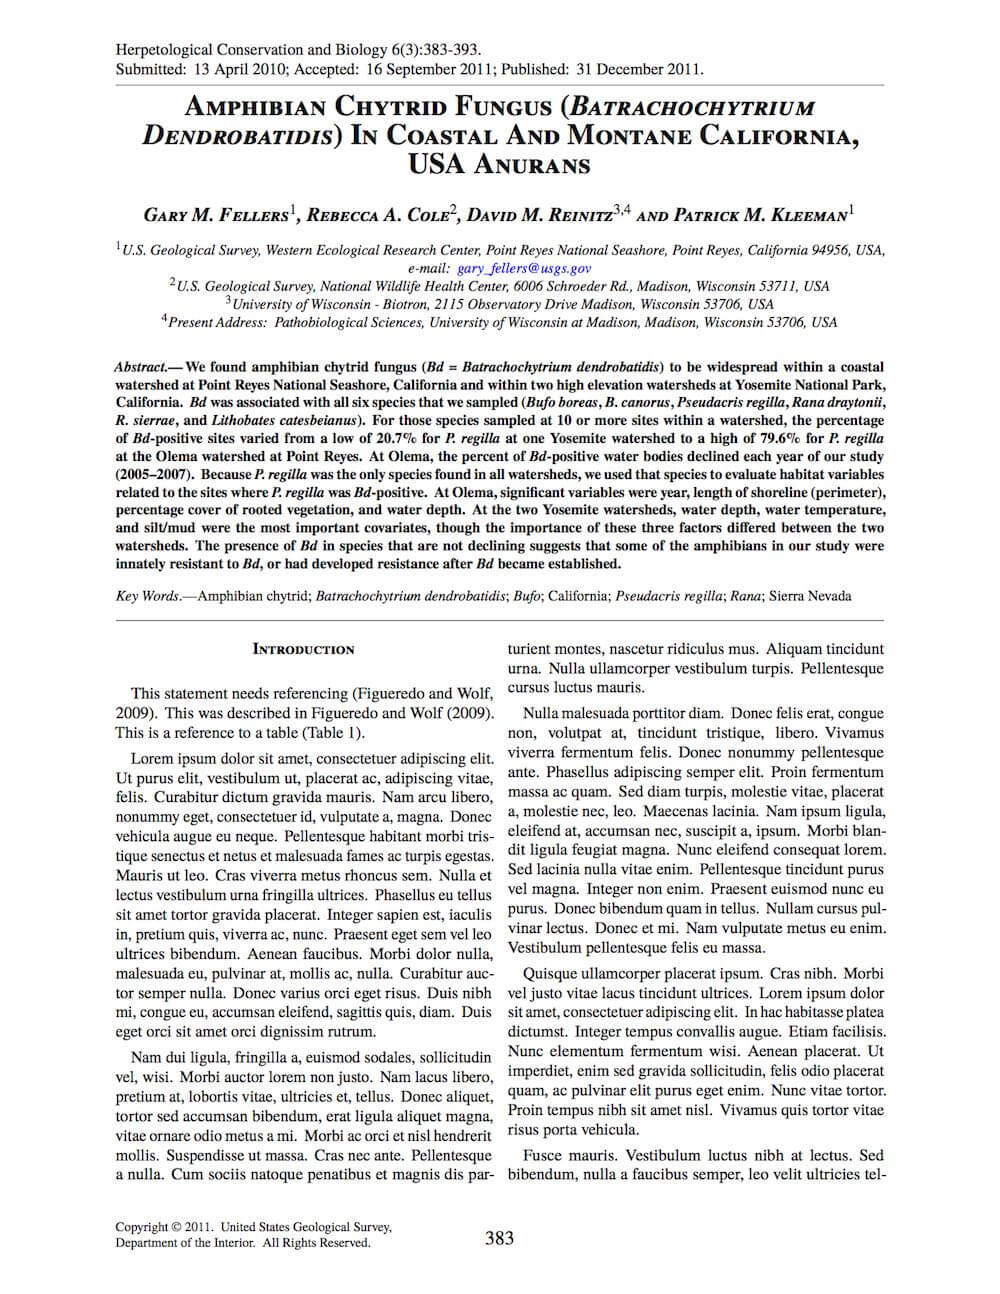 Latex Typesetting - Showcase within Journal Paper Template Word